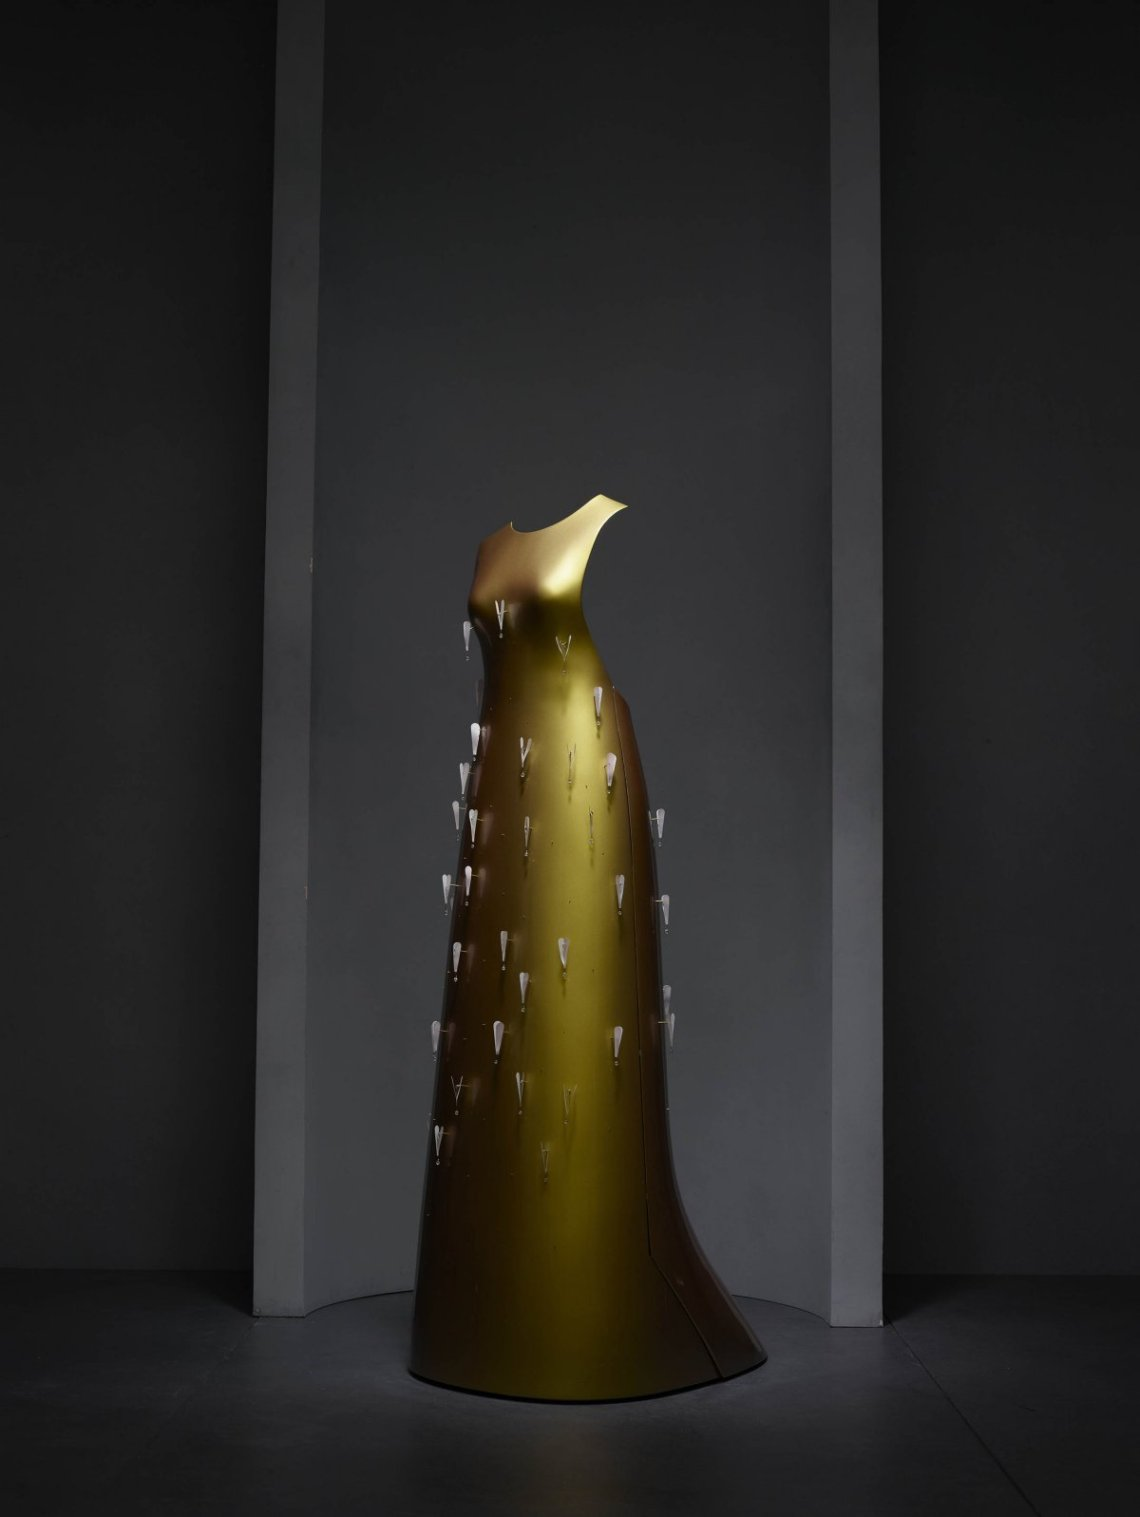 the-kaikoku-floating-dress-by-designer-hussein-chalayan-is-one-of-the-more-high-tech-fashion-pieces-weve-seen-the-dress-has-a-spray-painted-gold-shell-with-little-motors-that-can-be-controlled-via-a-remote-control